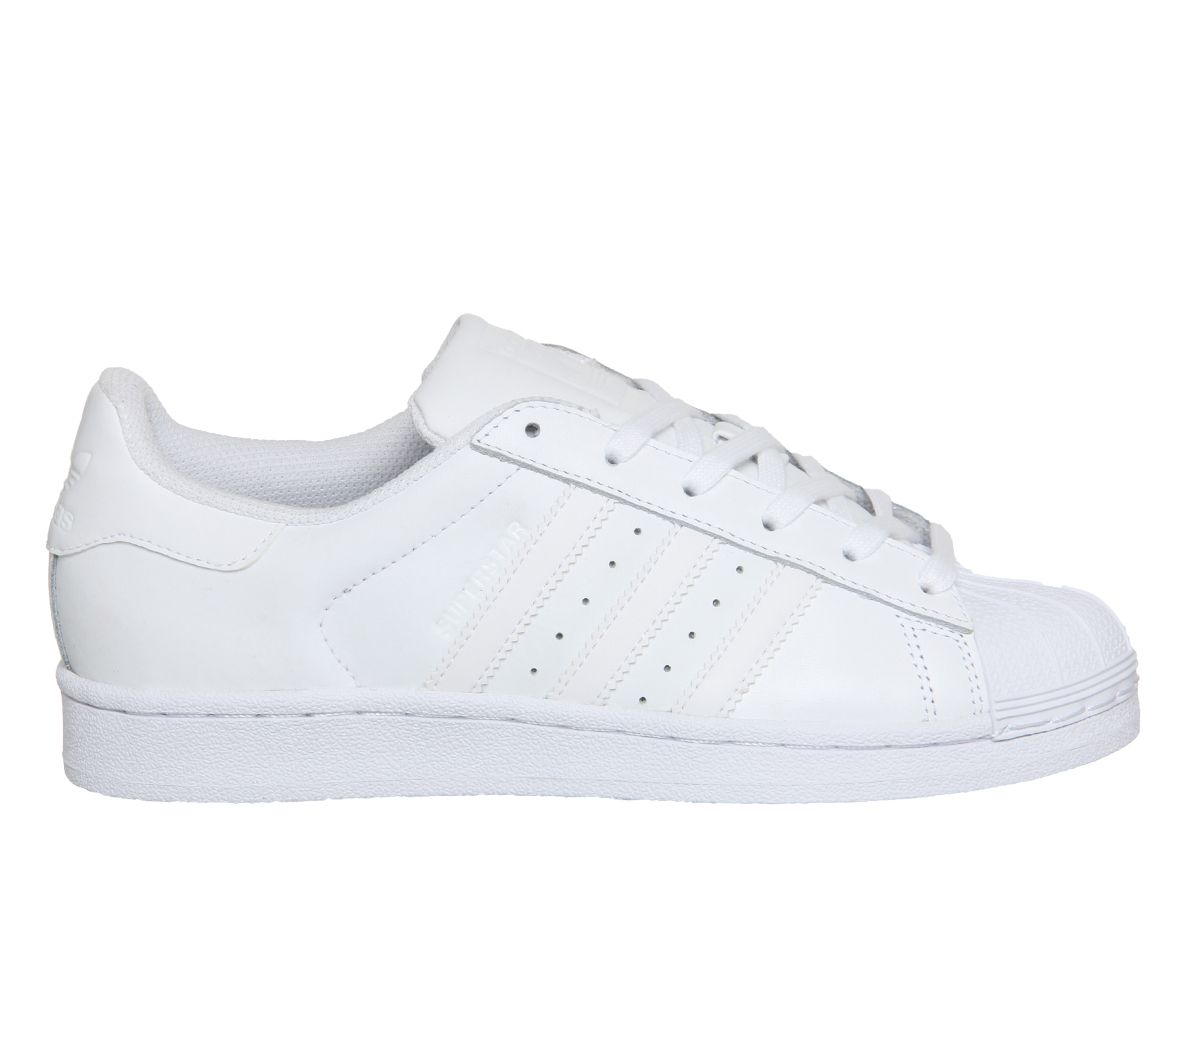 buy popular efa56 0e784 Sentinel Womens Adidas Superstar Trainers White Mono Foundation Trainers  Shoes